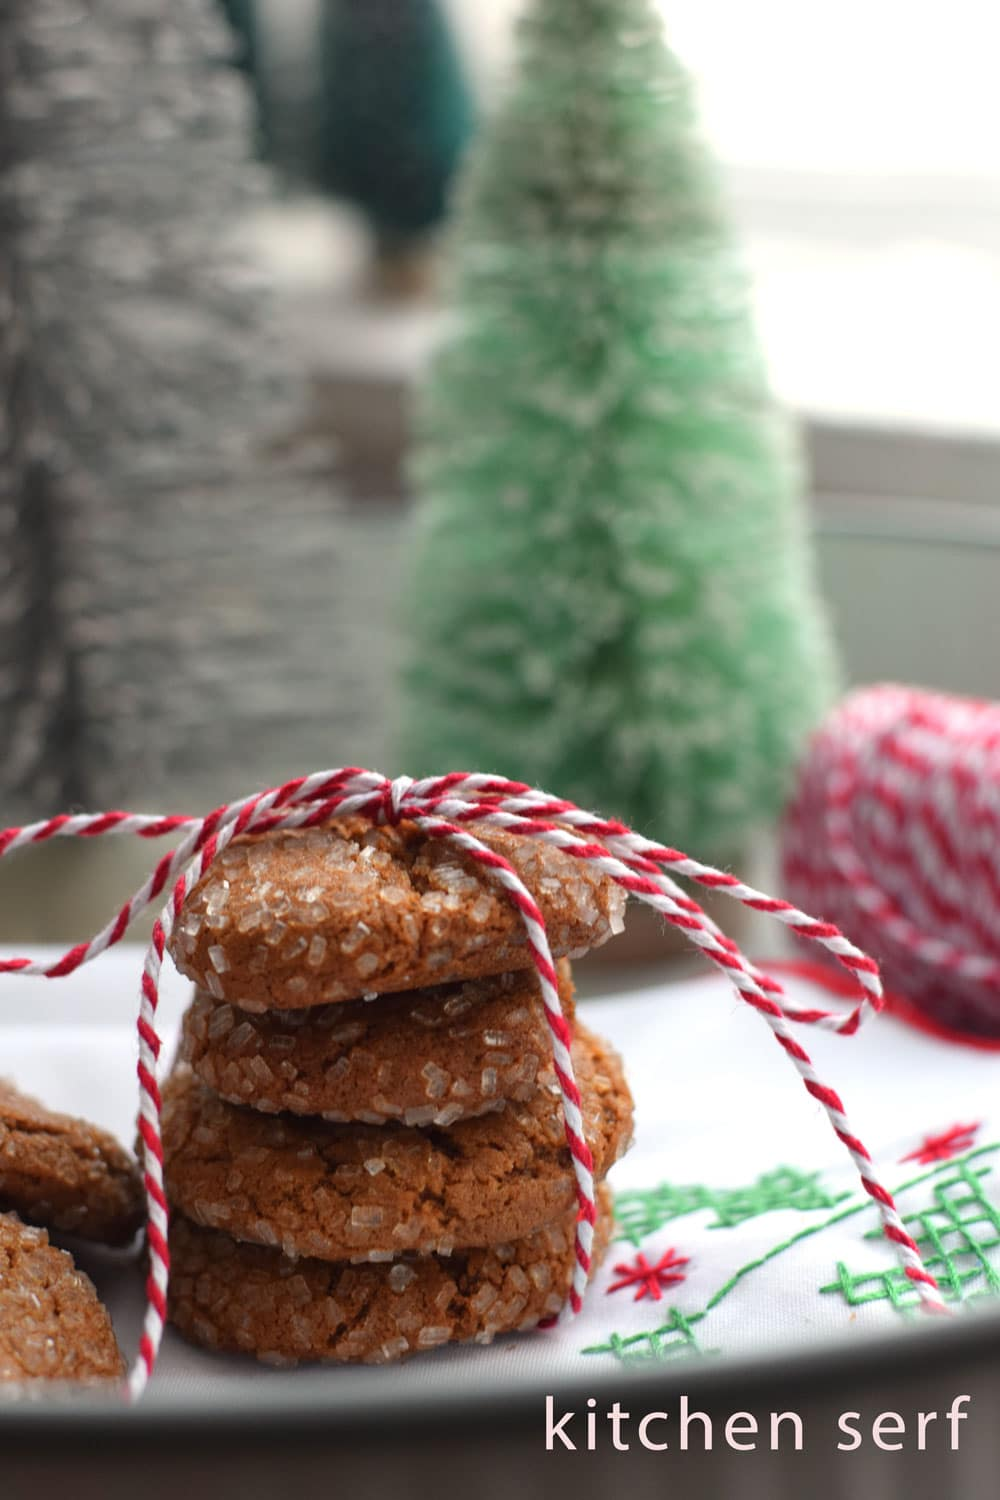 a stack of gingersnap cookies tied with red and white bakers twine on a white background with a bit of red and green cross stitching